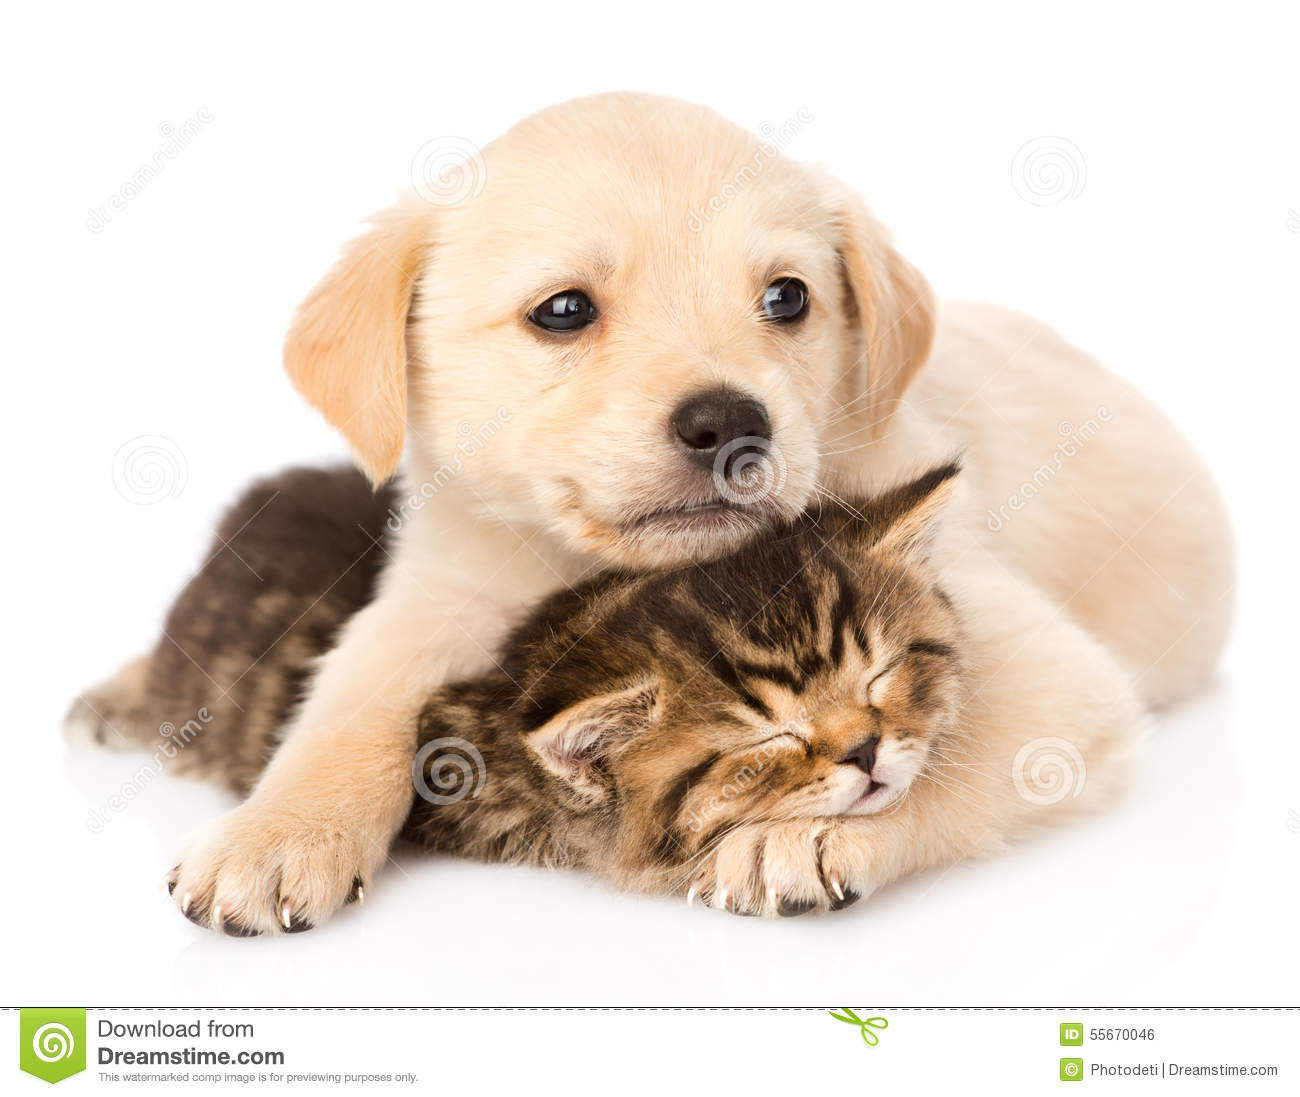 Golden retriever puppy dog hugging sleeping british cat. isolated